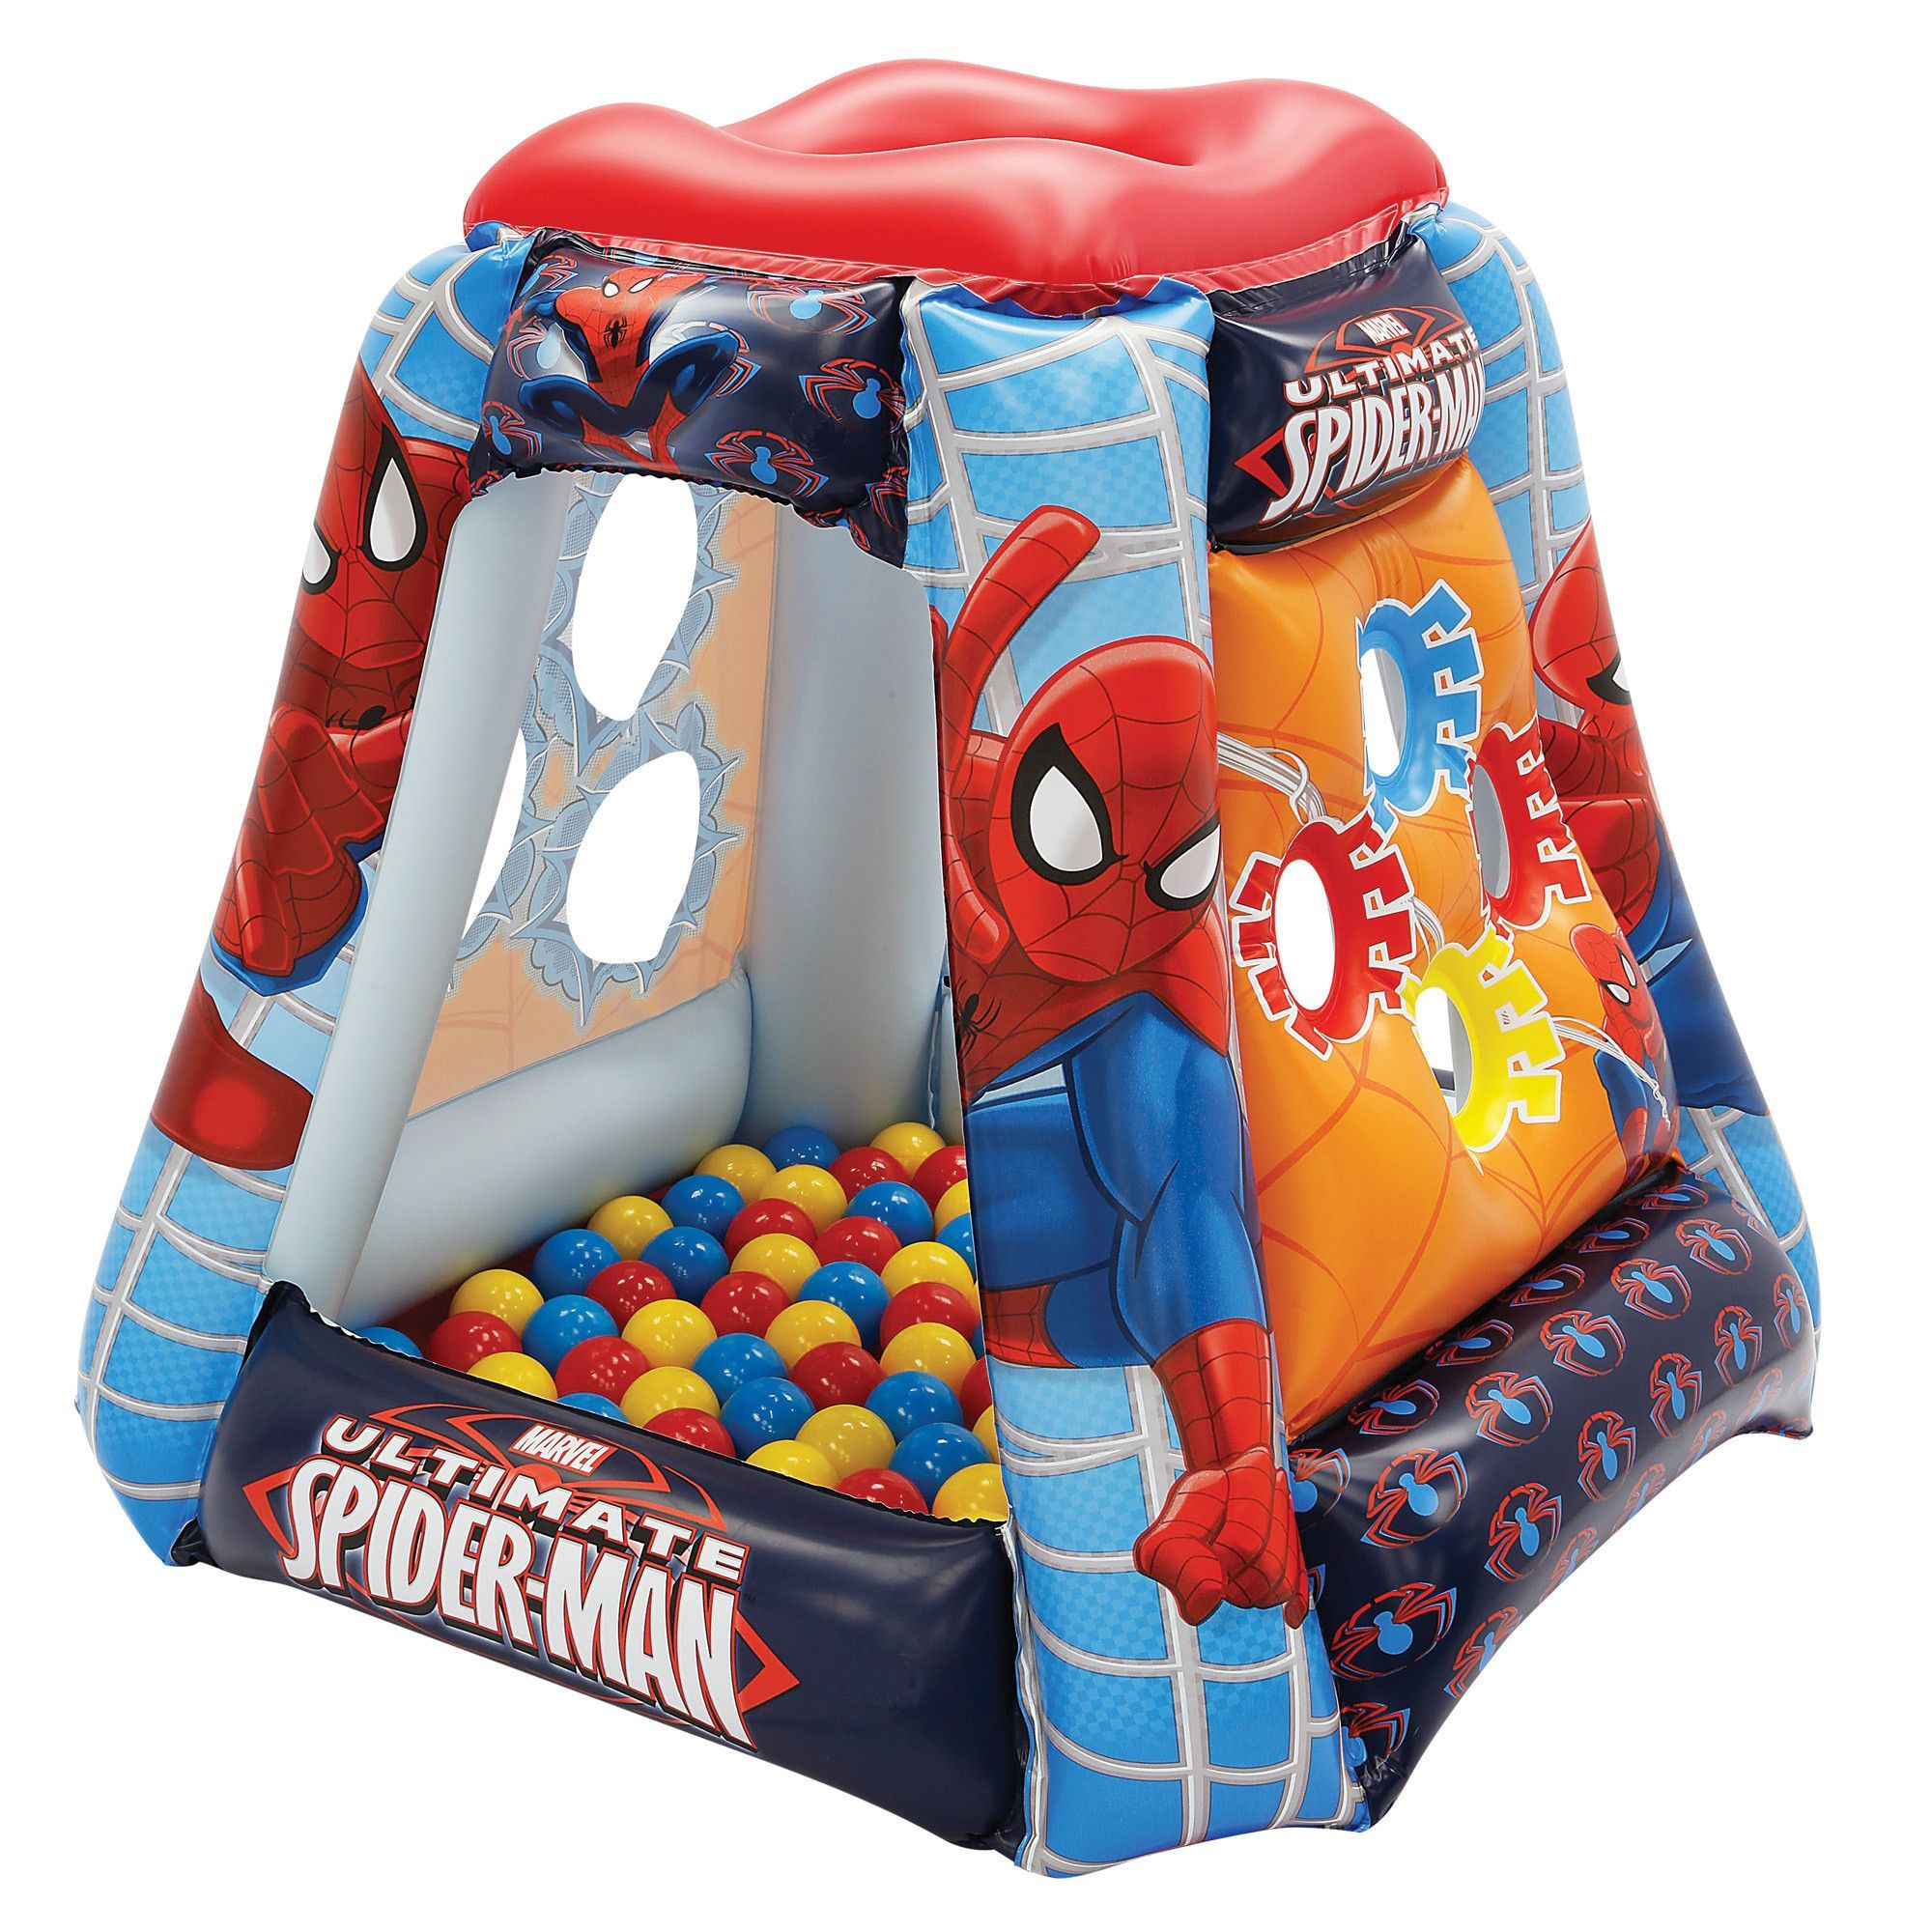 Moose Mountain Ultimate Spiderman Spider Power Playland Play Tent  sc 1 st  Pinterest & Moose Mountain Ultimate Spiderman Spider Power Playland Play Tent ...